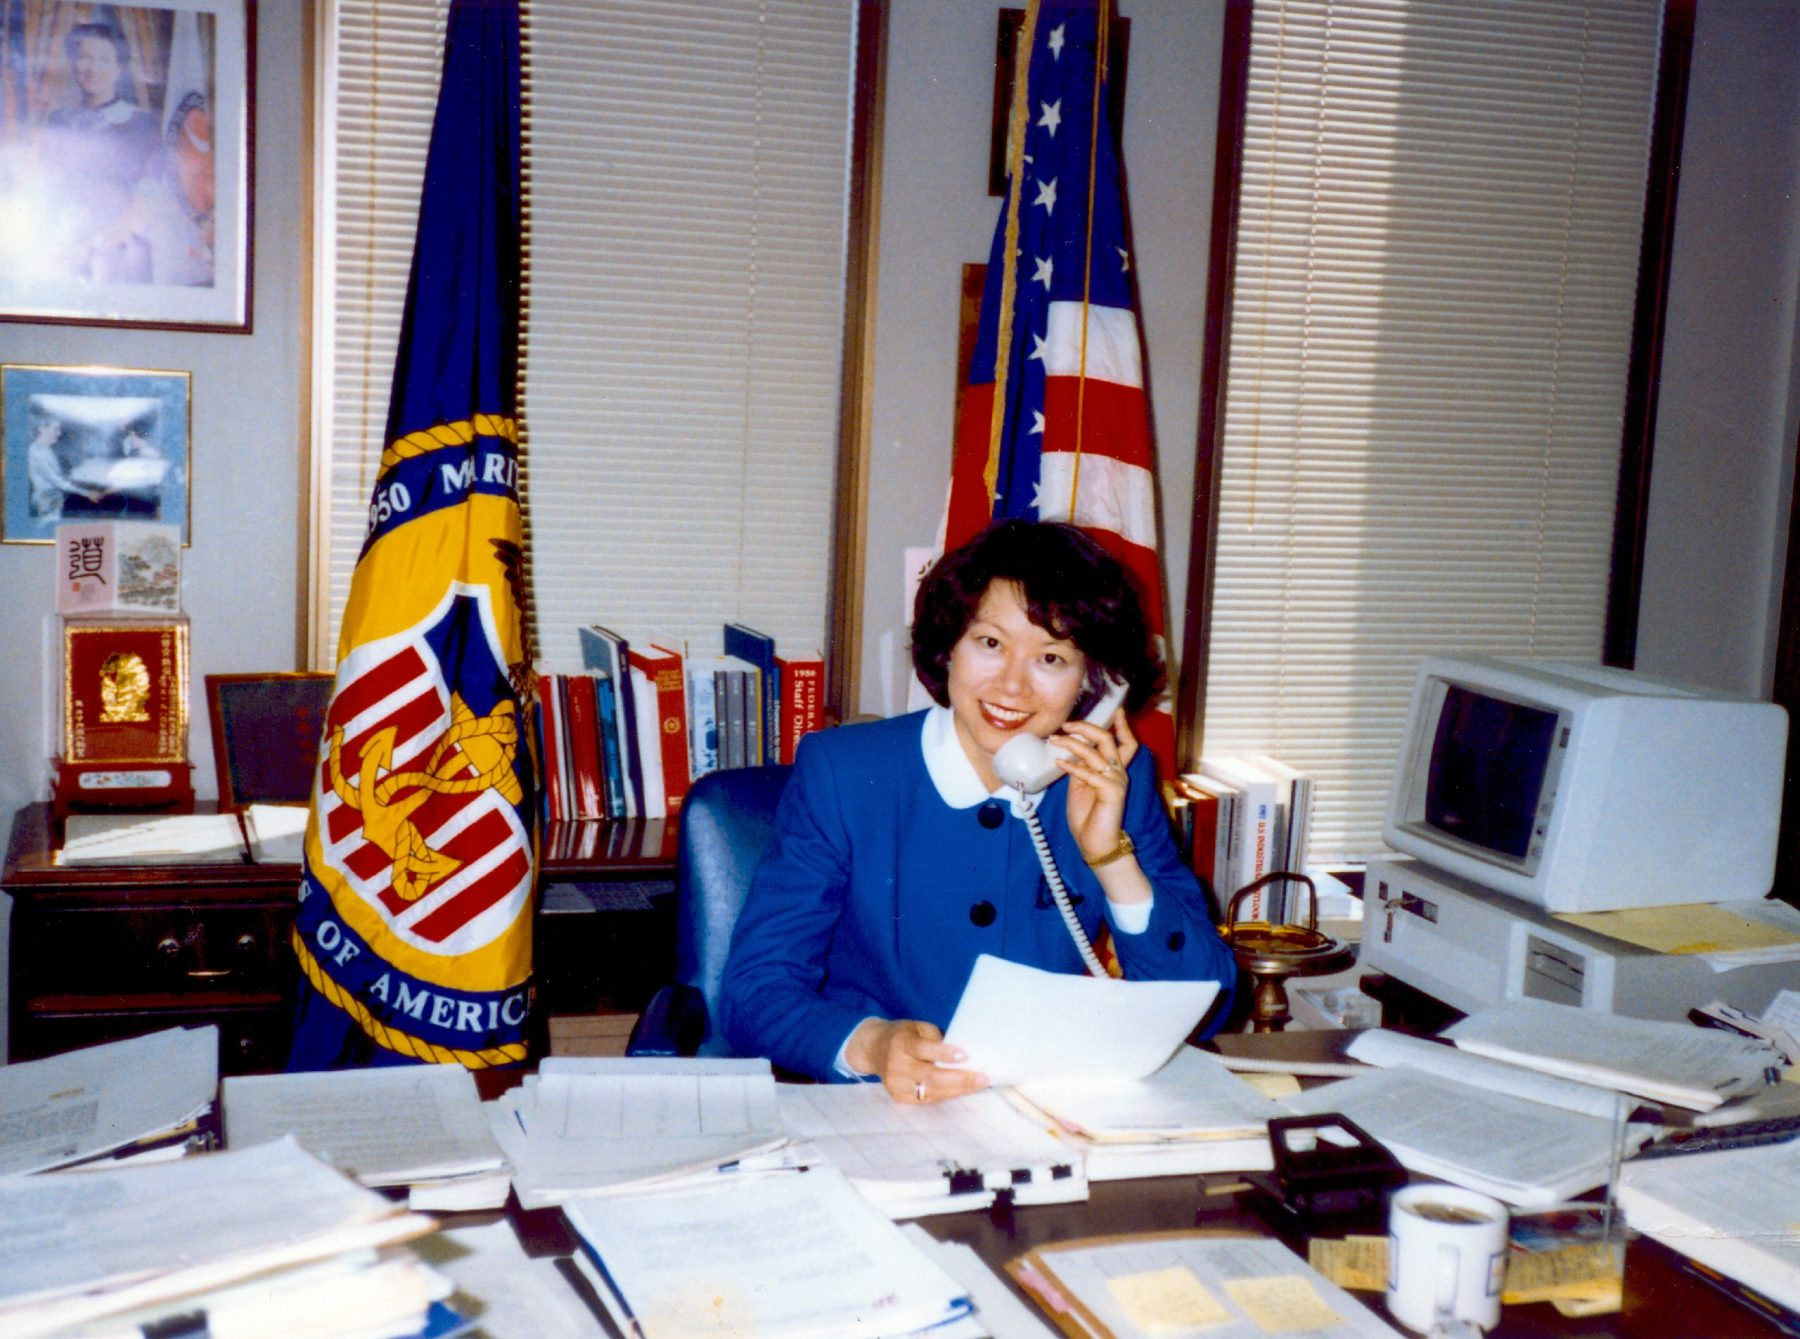 https://www.elainechao.com/wp-content/uploads/2020/10/012-1-scaled.jpg